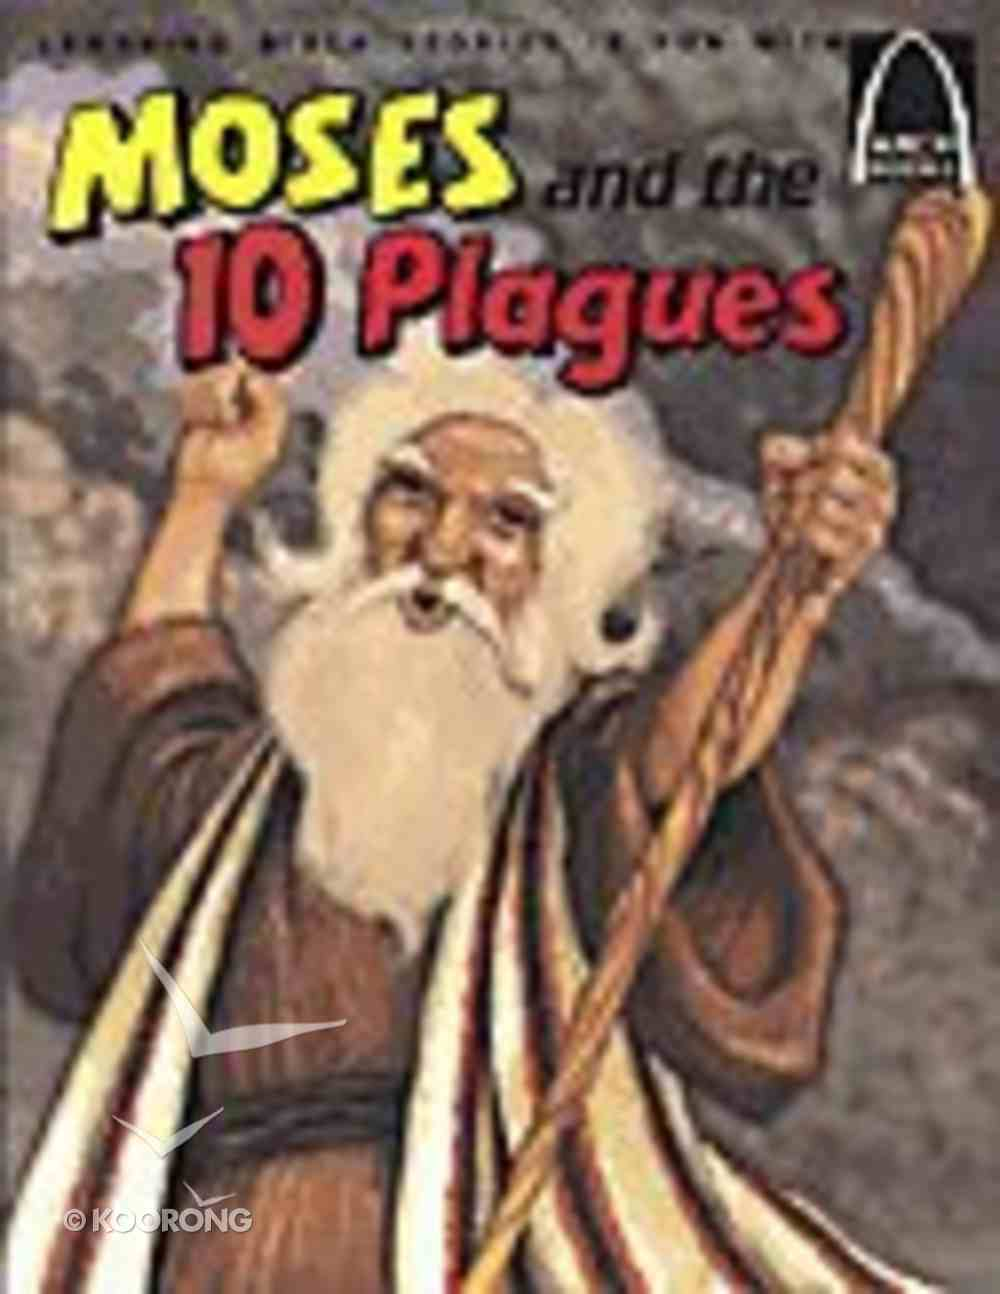 Moses and the 10 Plagues (Arch Books Series) Paperback